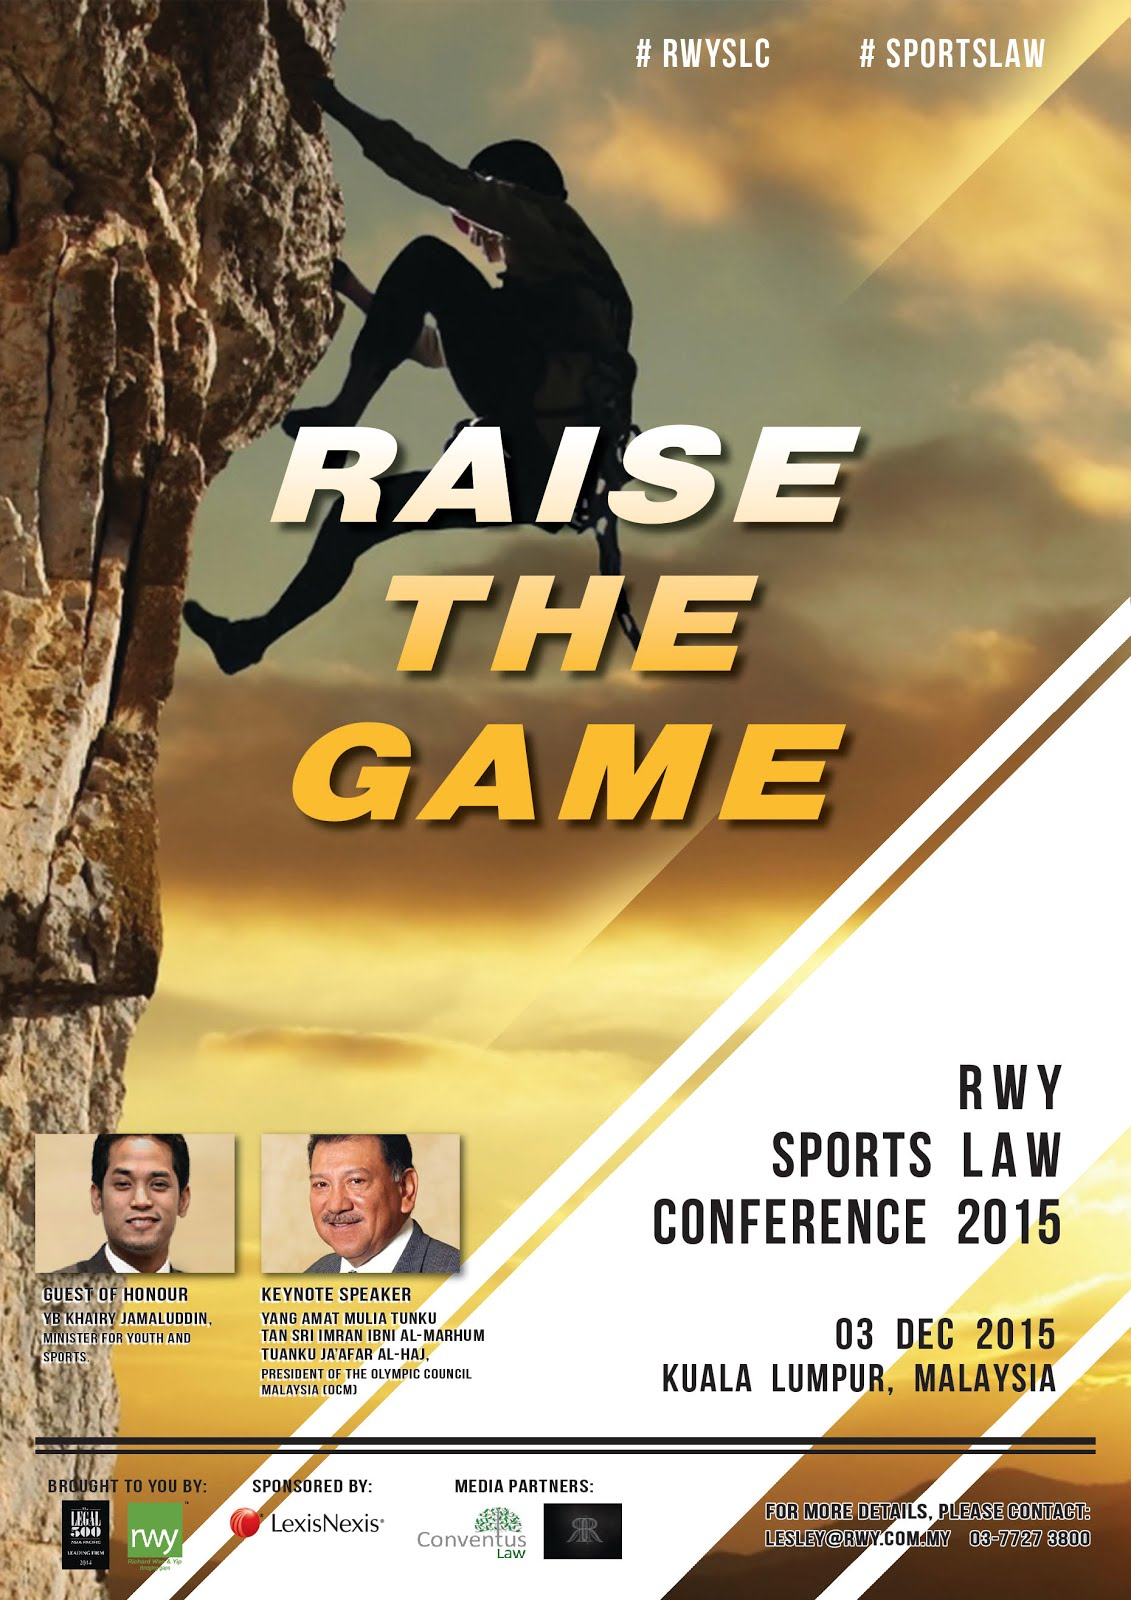 RWY Sports Law Conference 2015